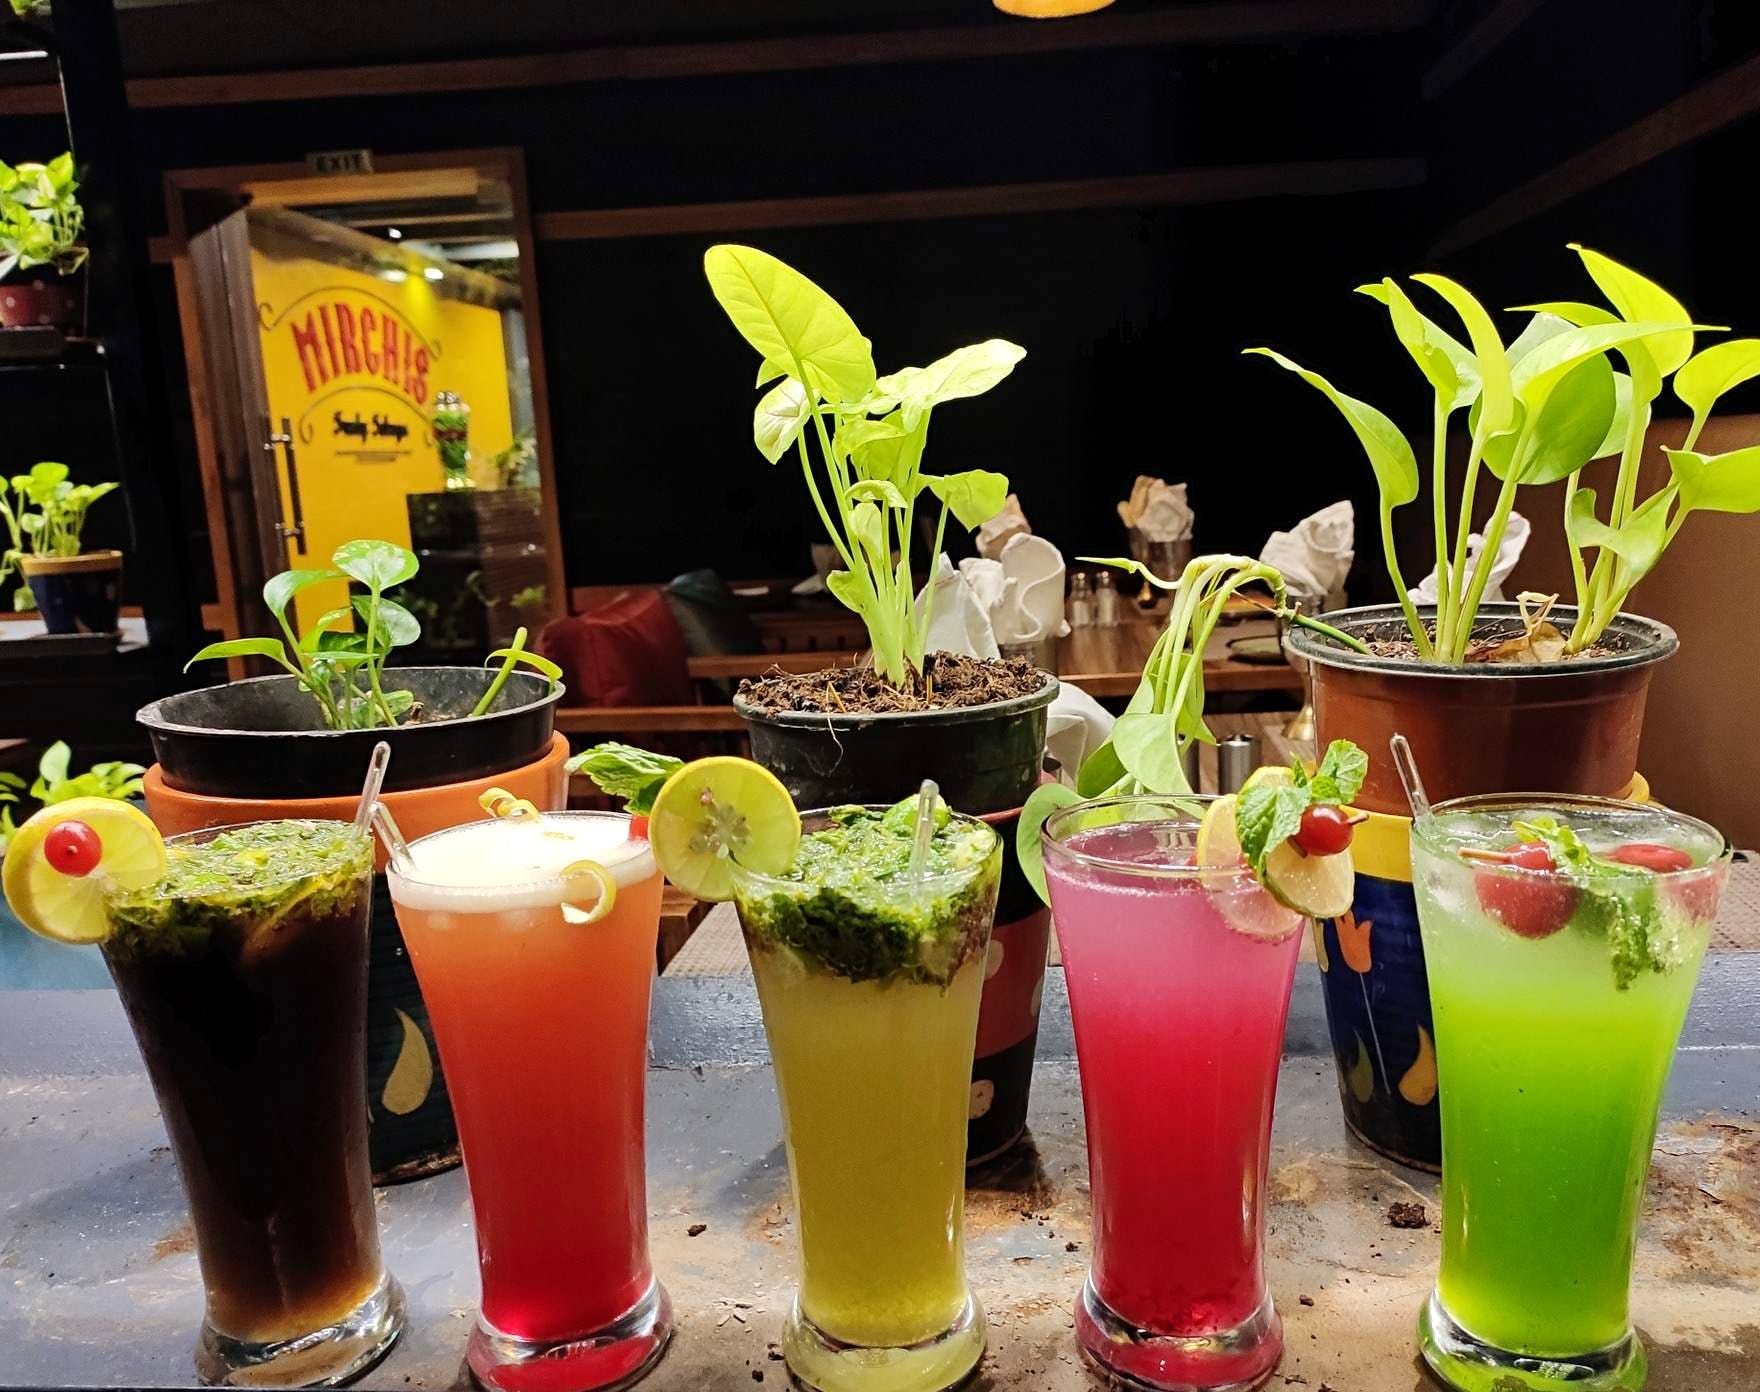 Drop By Mirchis For Their Newly Introduced Yum Mocktails!